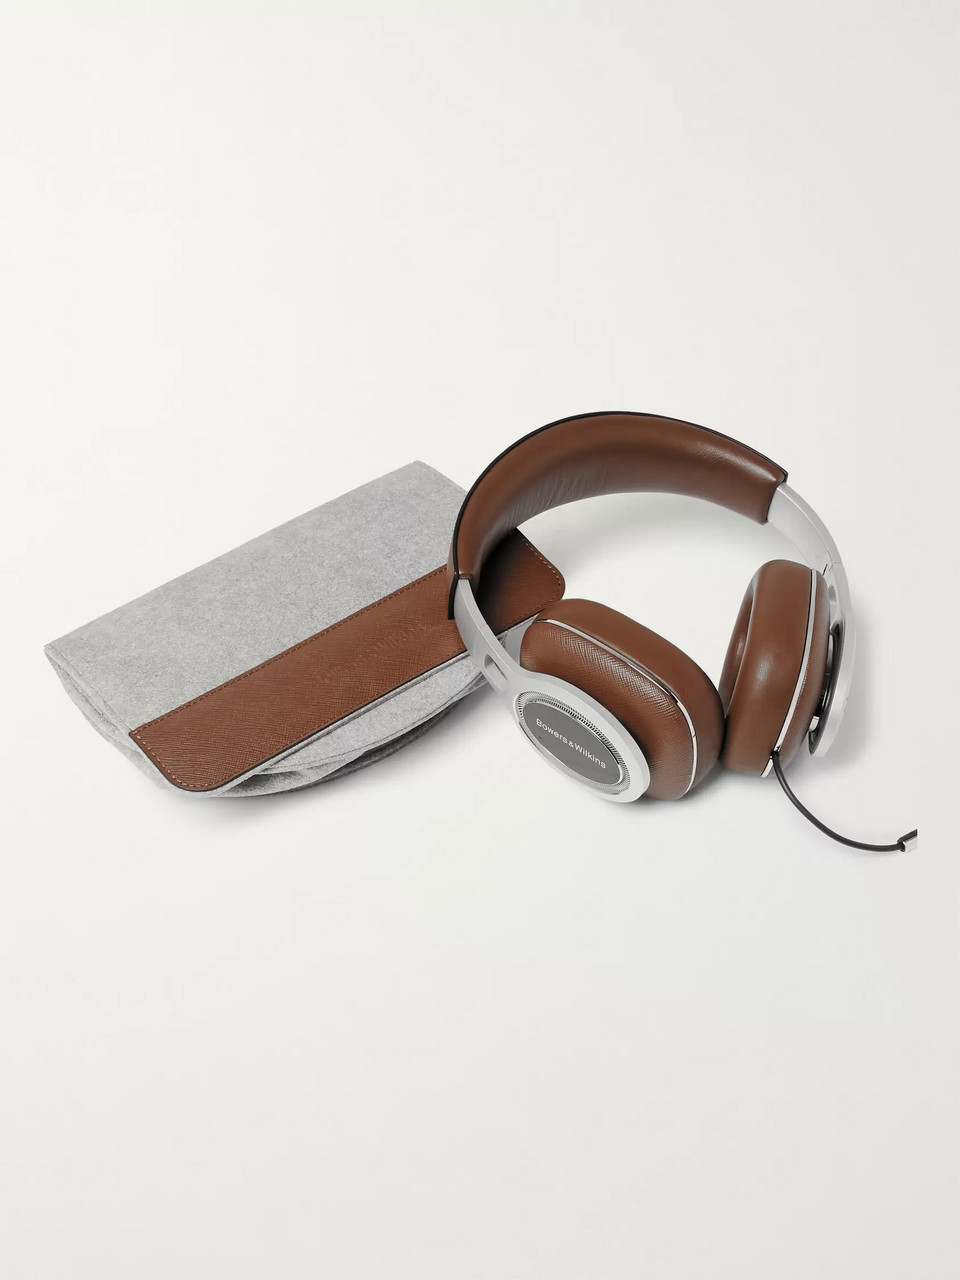 Bowers & Wilkins P9 Signature Cross-Grain Leather Headphones